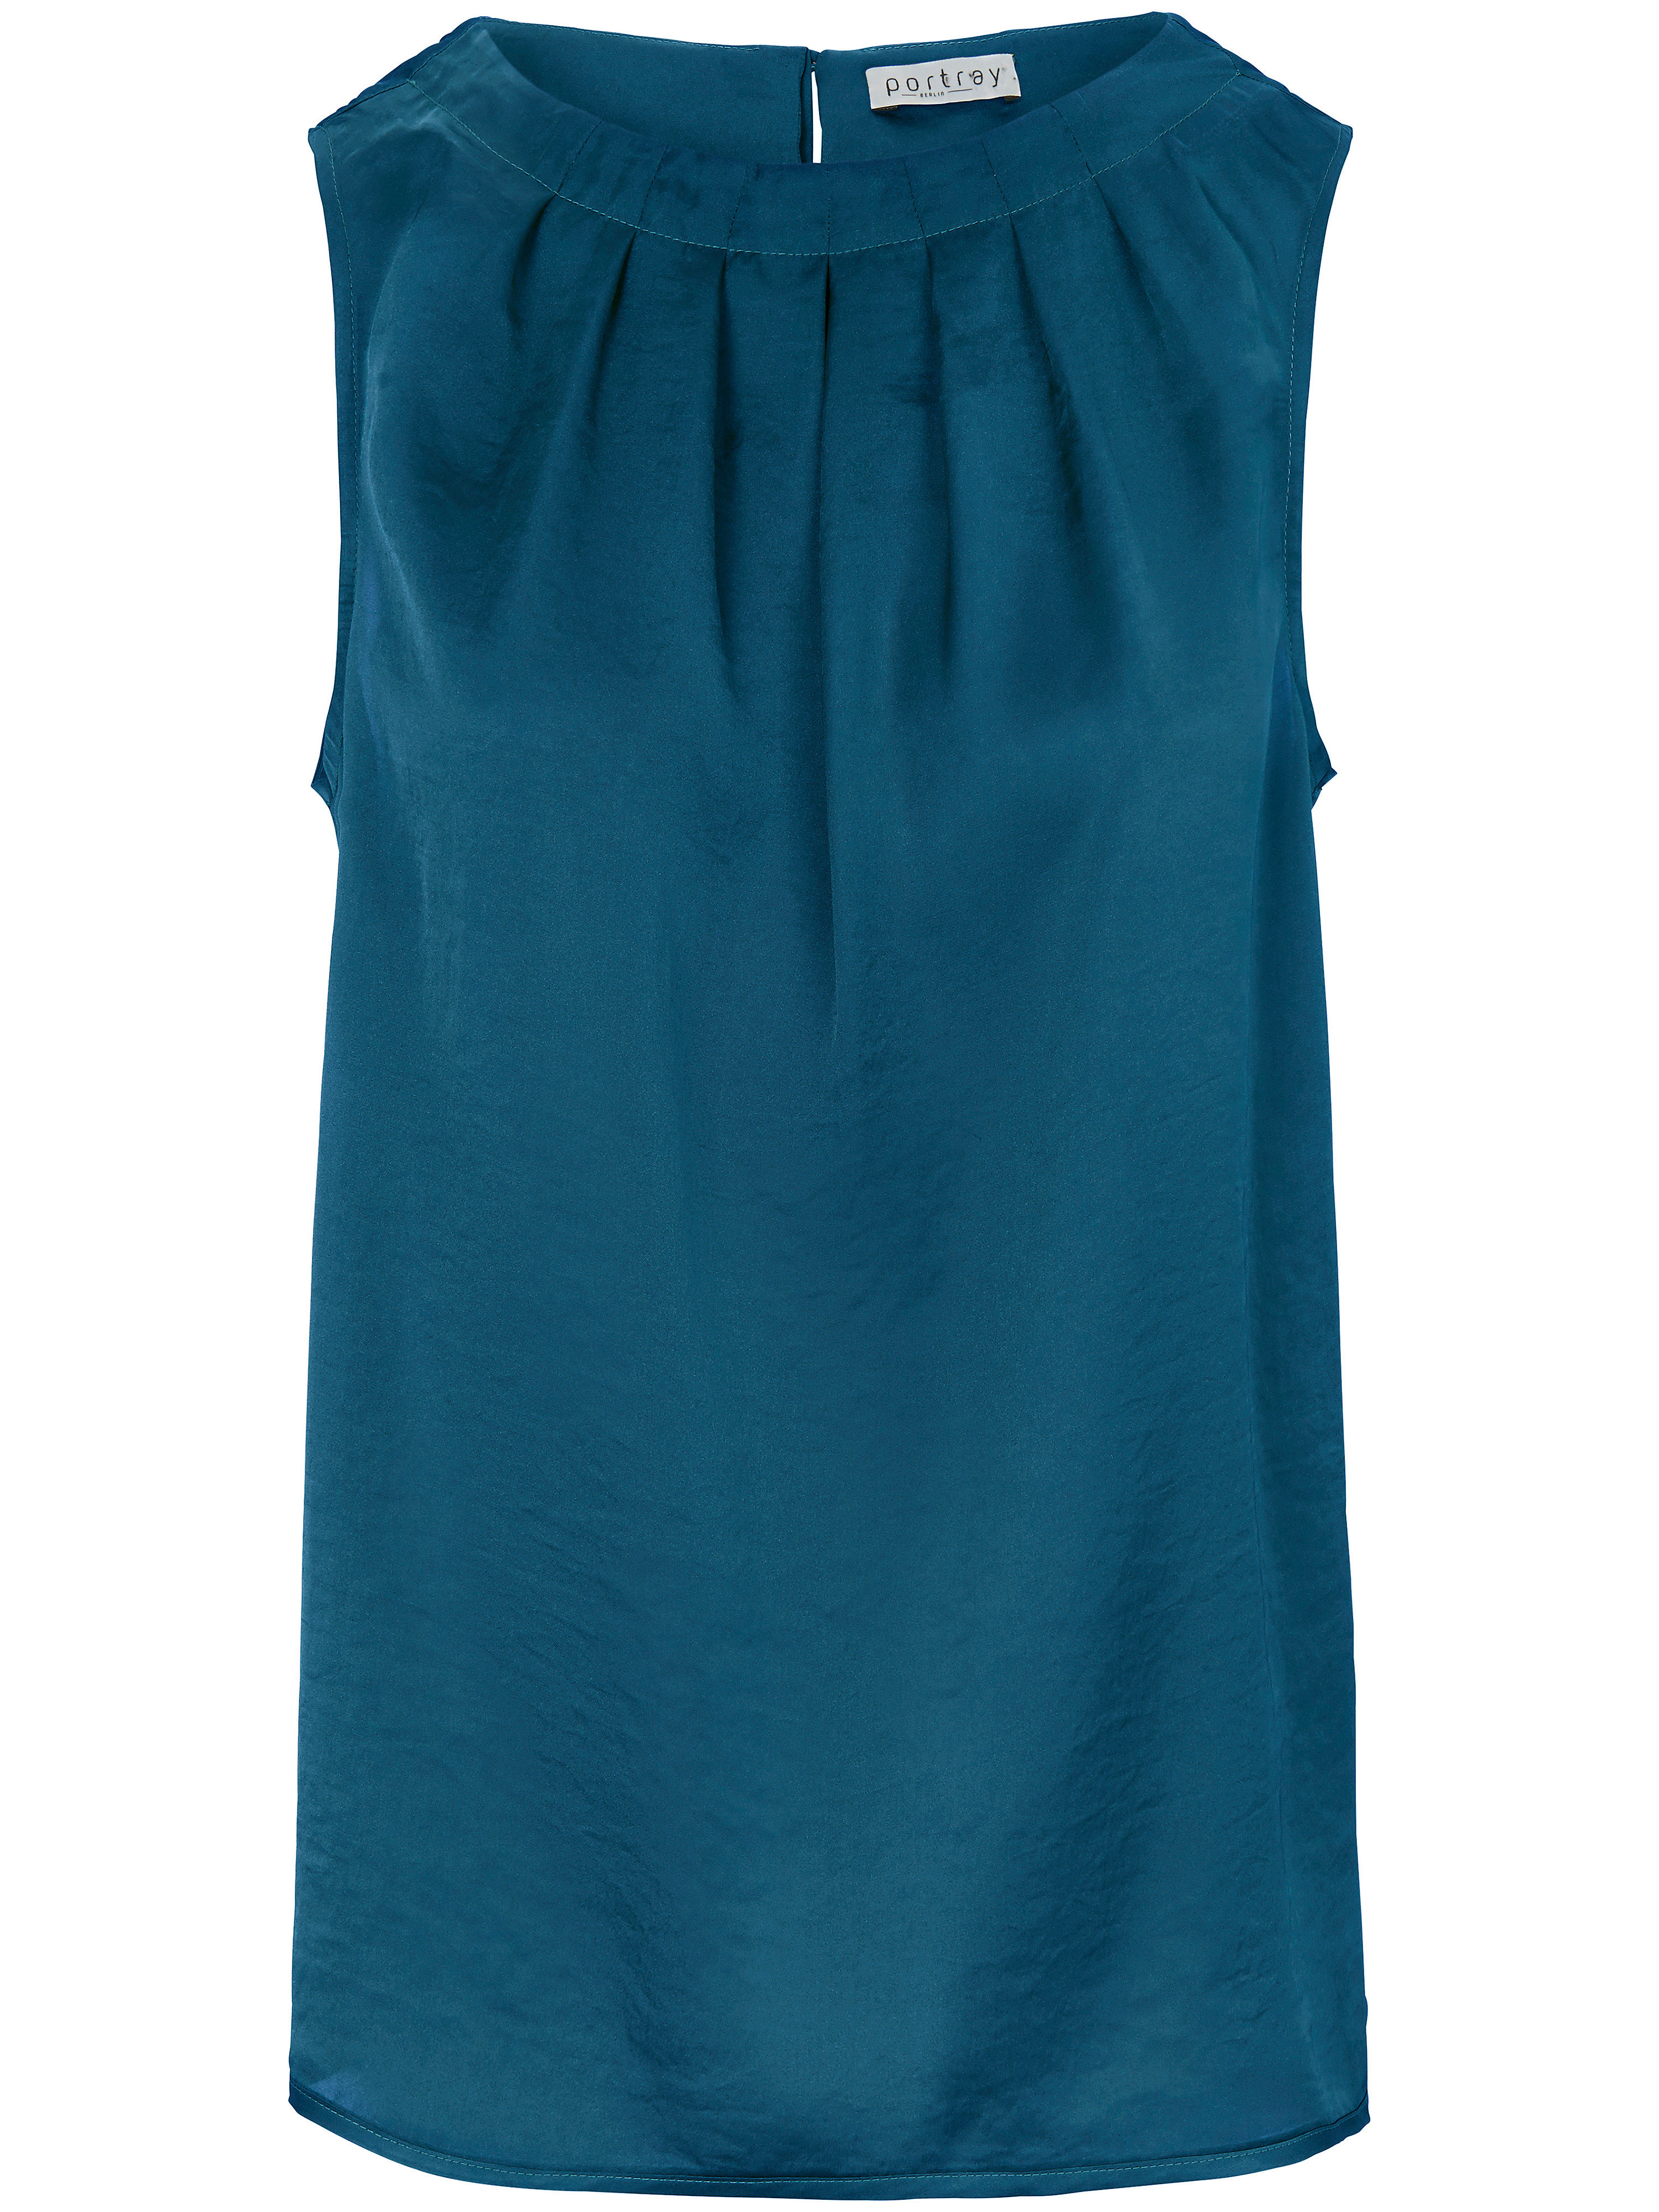 Le top  portray berlin turquoise taille 44